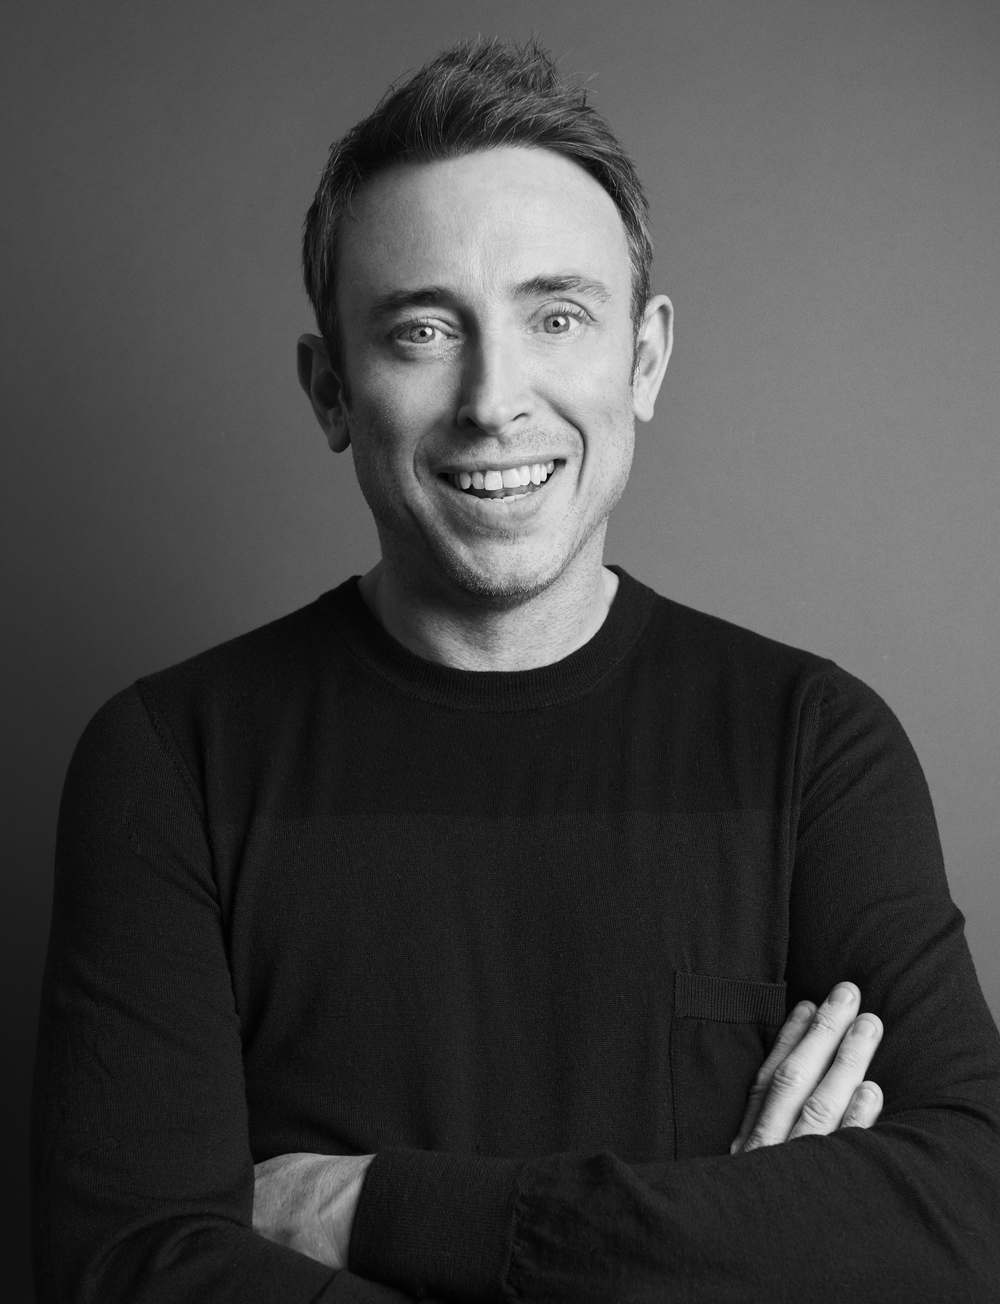 Revlon Professional appoints John Vial to 'Global Influencer' role.